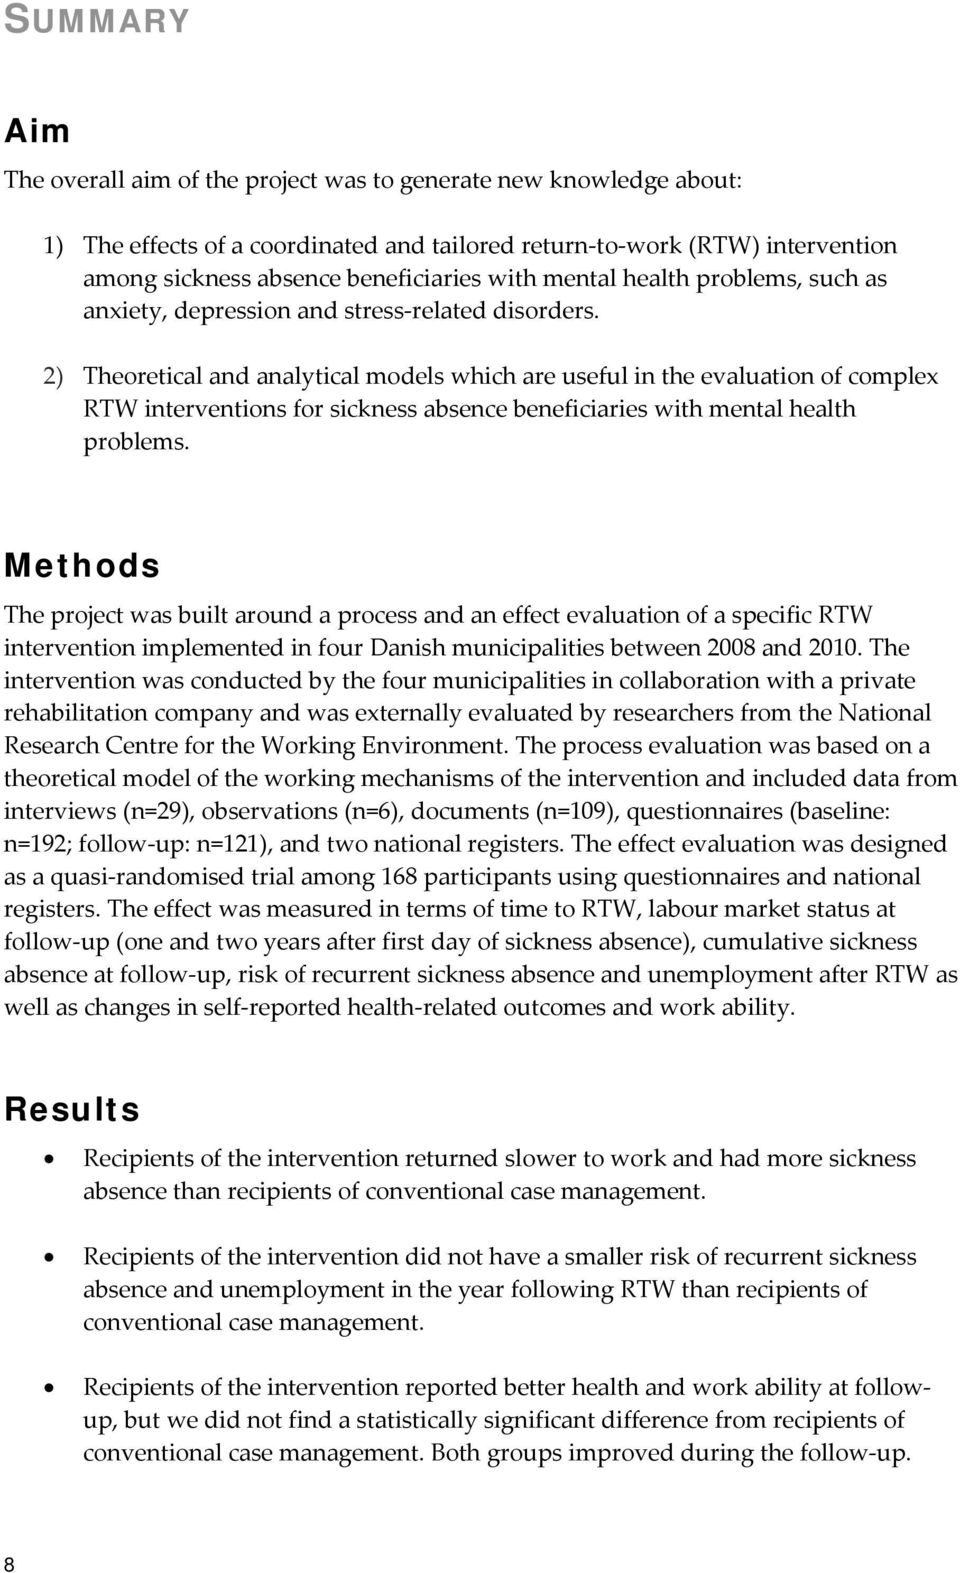 2) Theoretical and analytical models which are useful in the evaluation of complex RTW interventions for sickness absence beneficiaries with mental health problems.